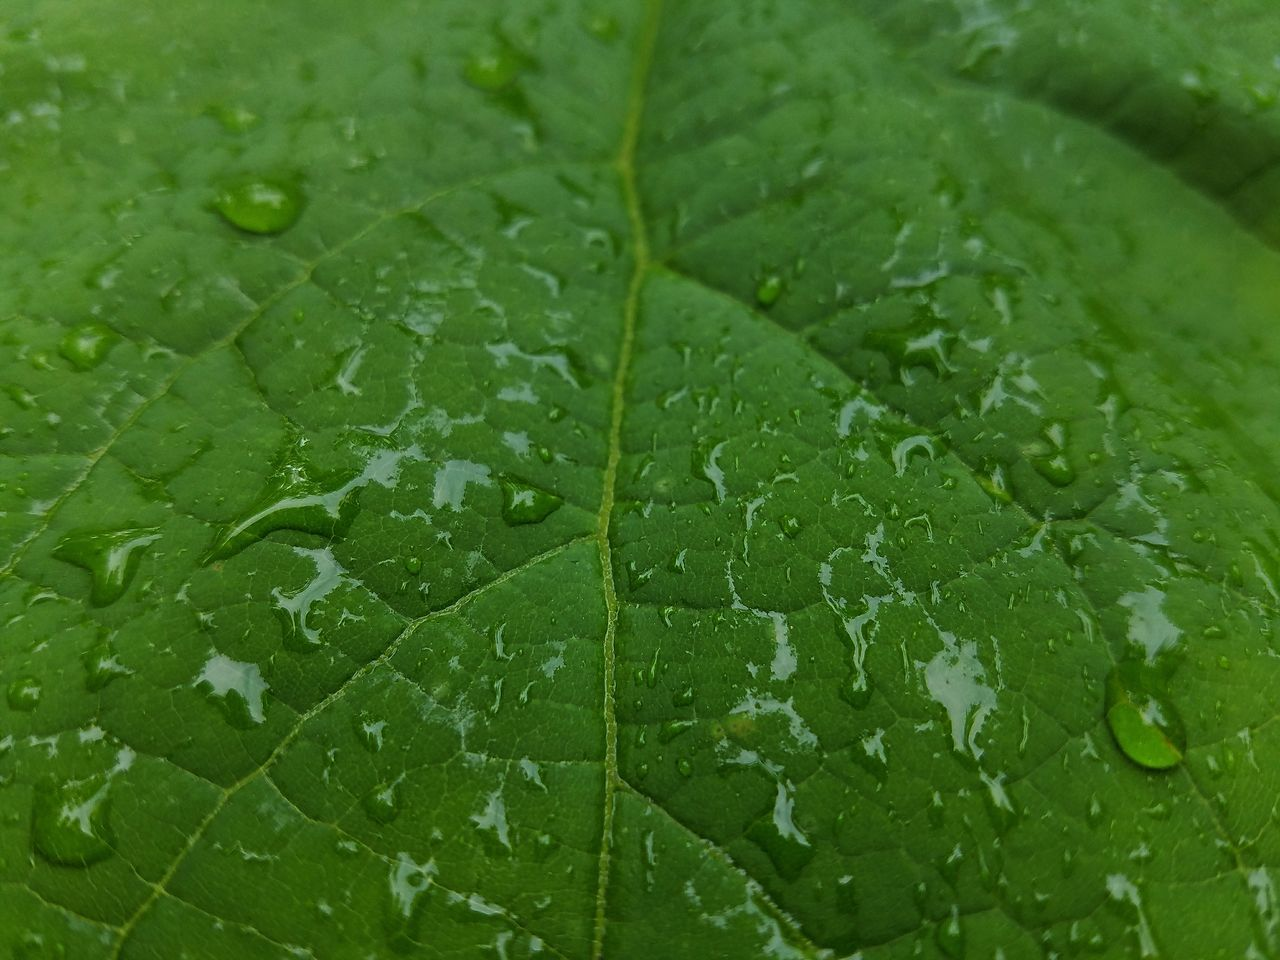 Green Leaf Green Color Drop Nature Water EyeEm Best Shots EyeEm Getting Inspired Android Photography Samsung Galaxy S7 Edge Pattern